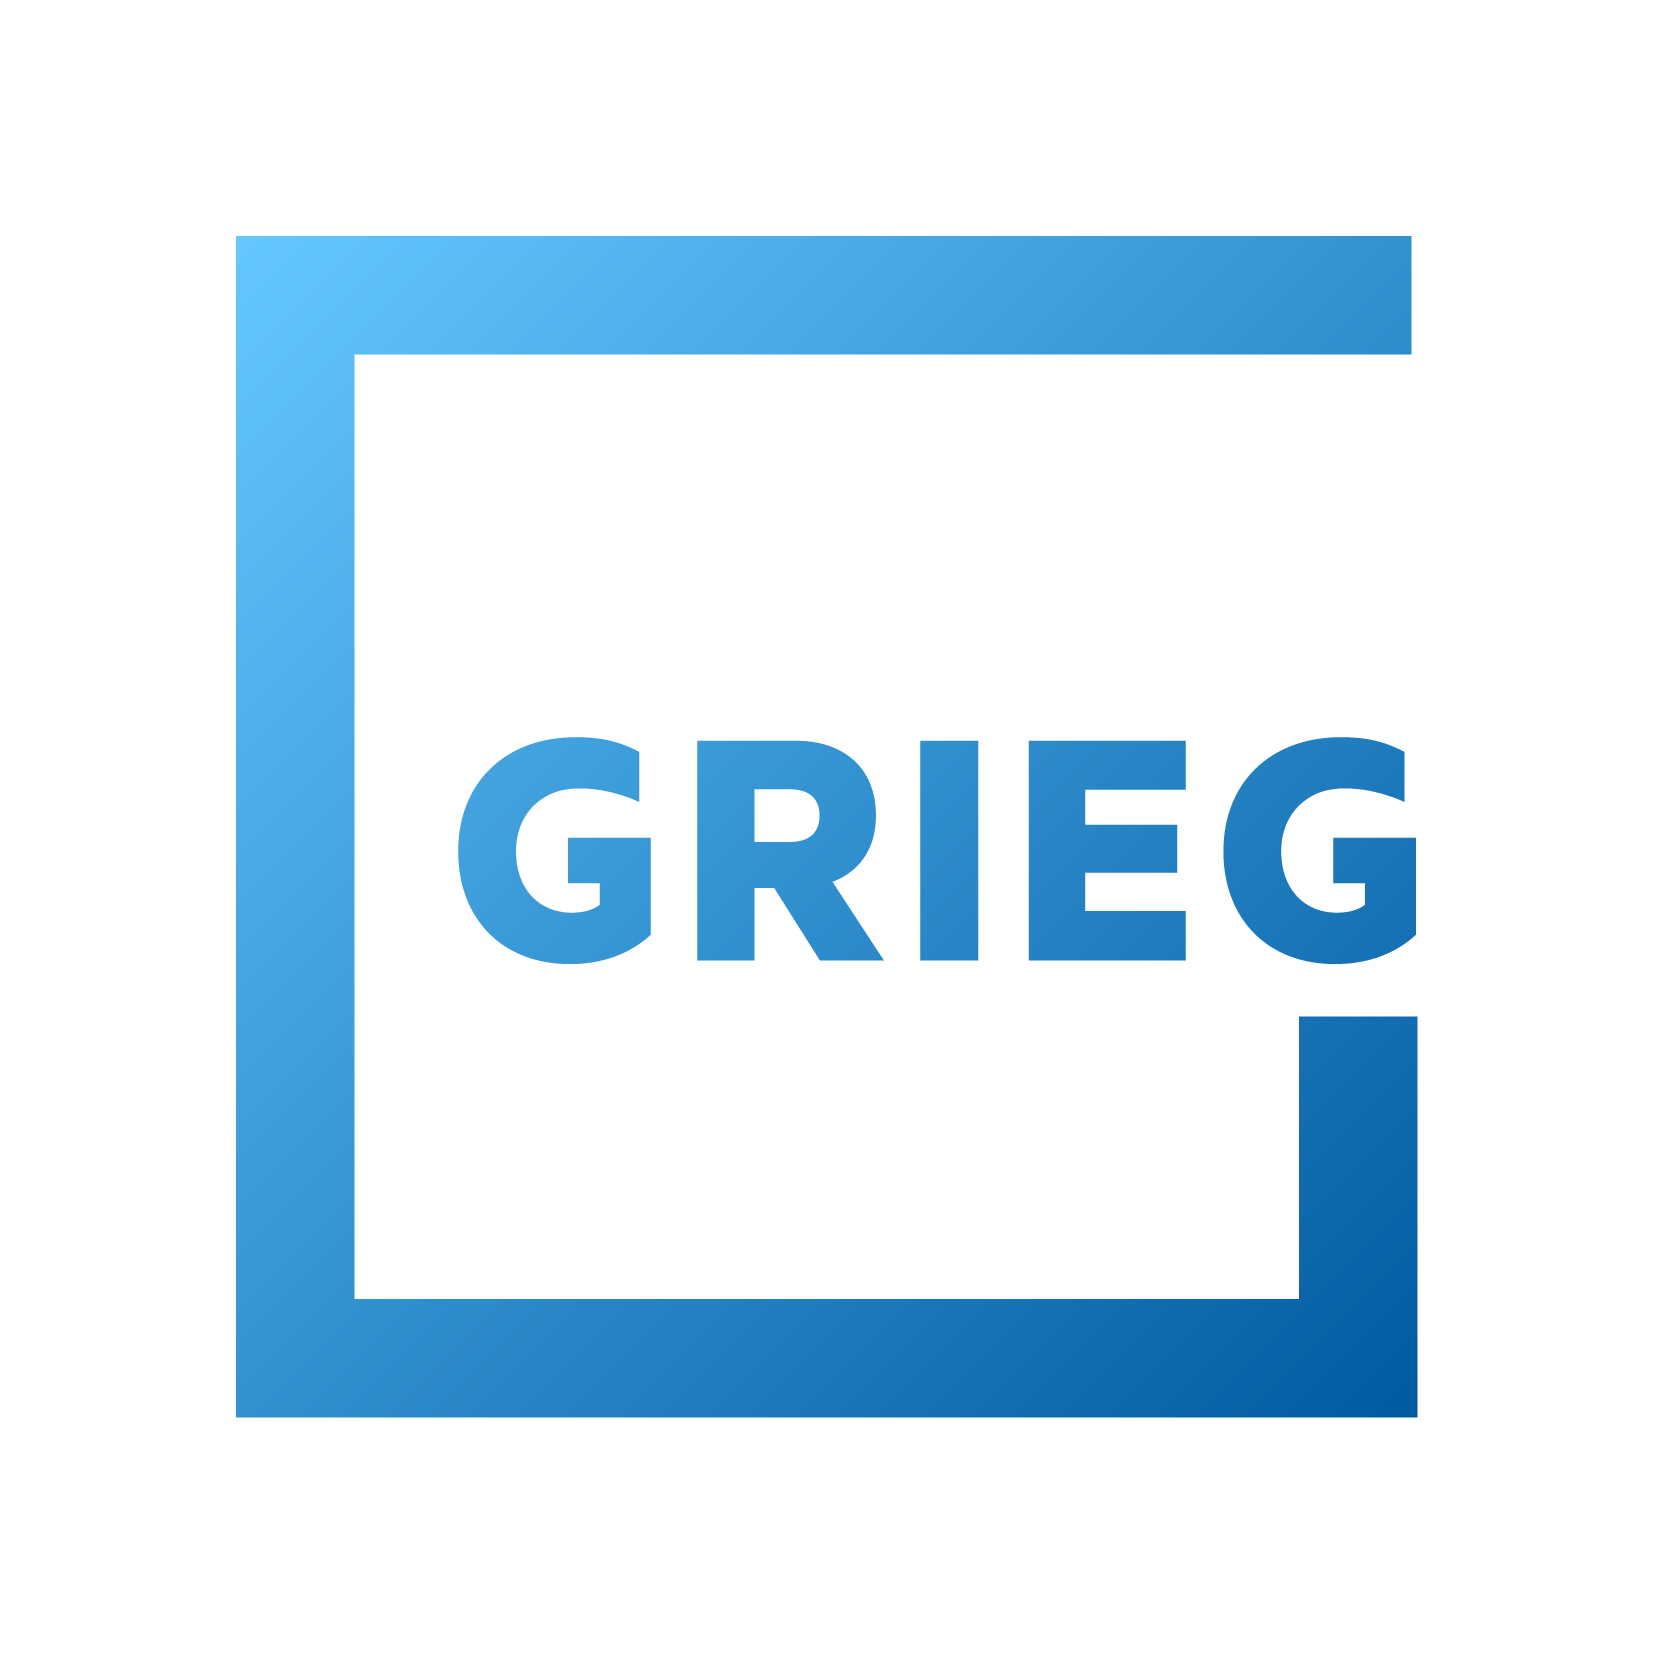 Grieg AS